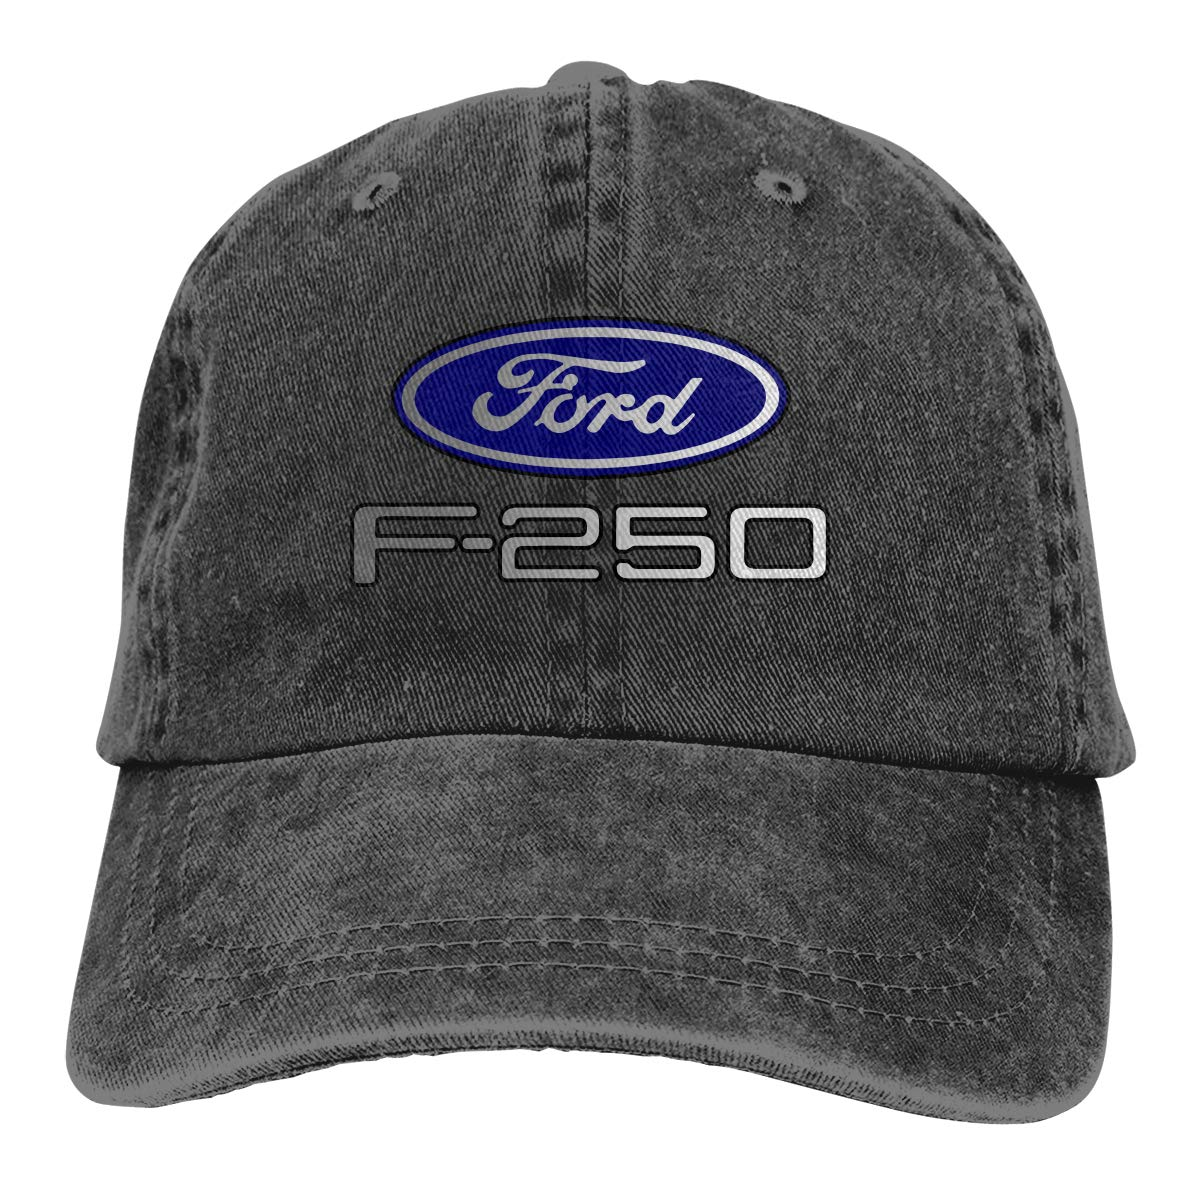 Unisex Ford F-250 Washed Baseball Cap Vintage Adjustable Dad-Hat